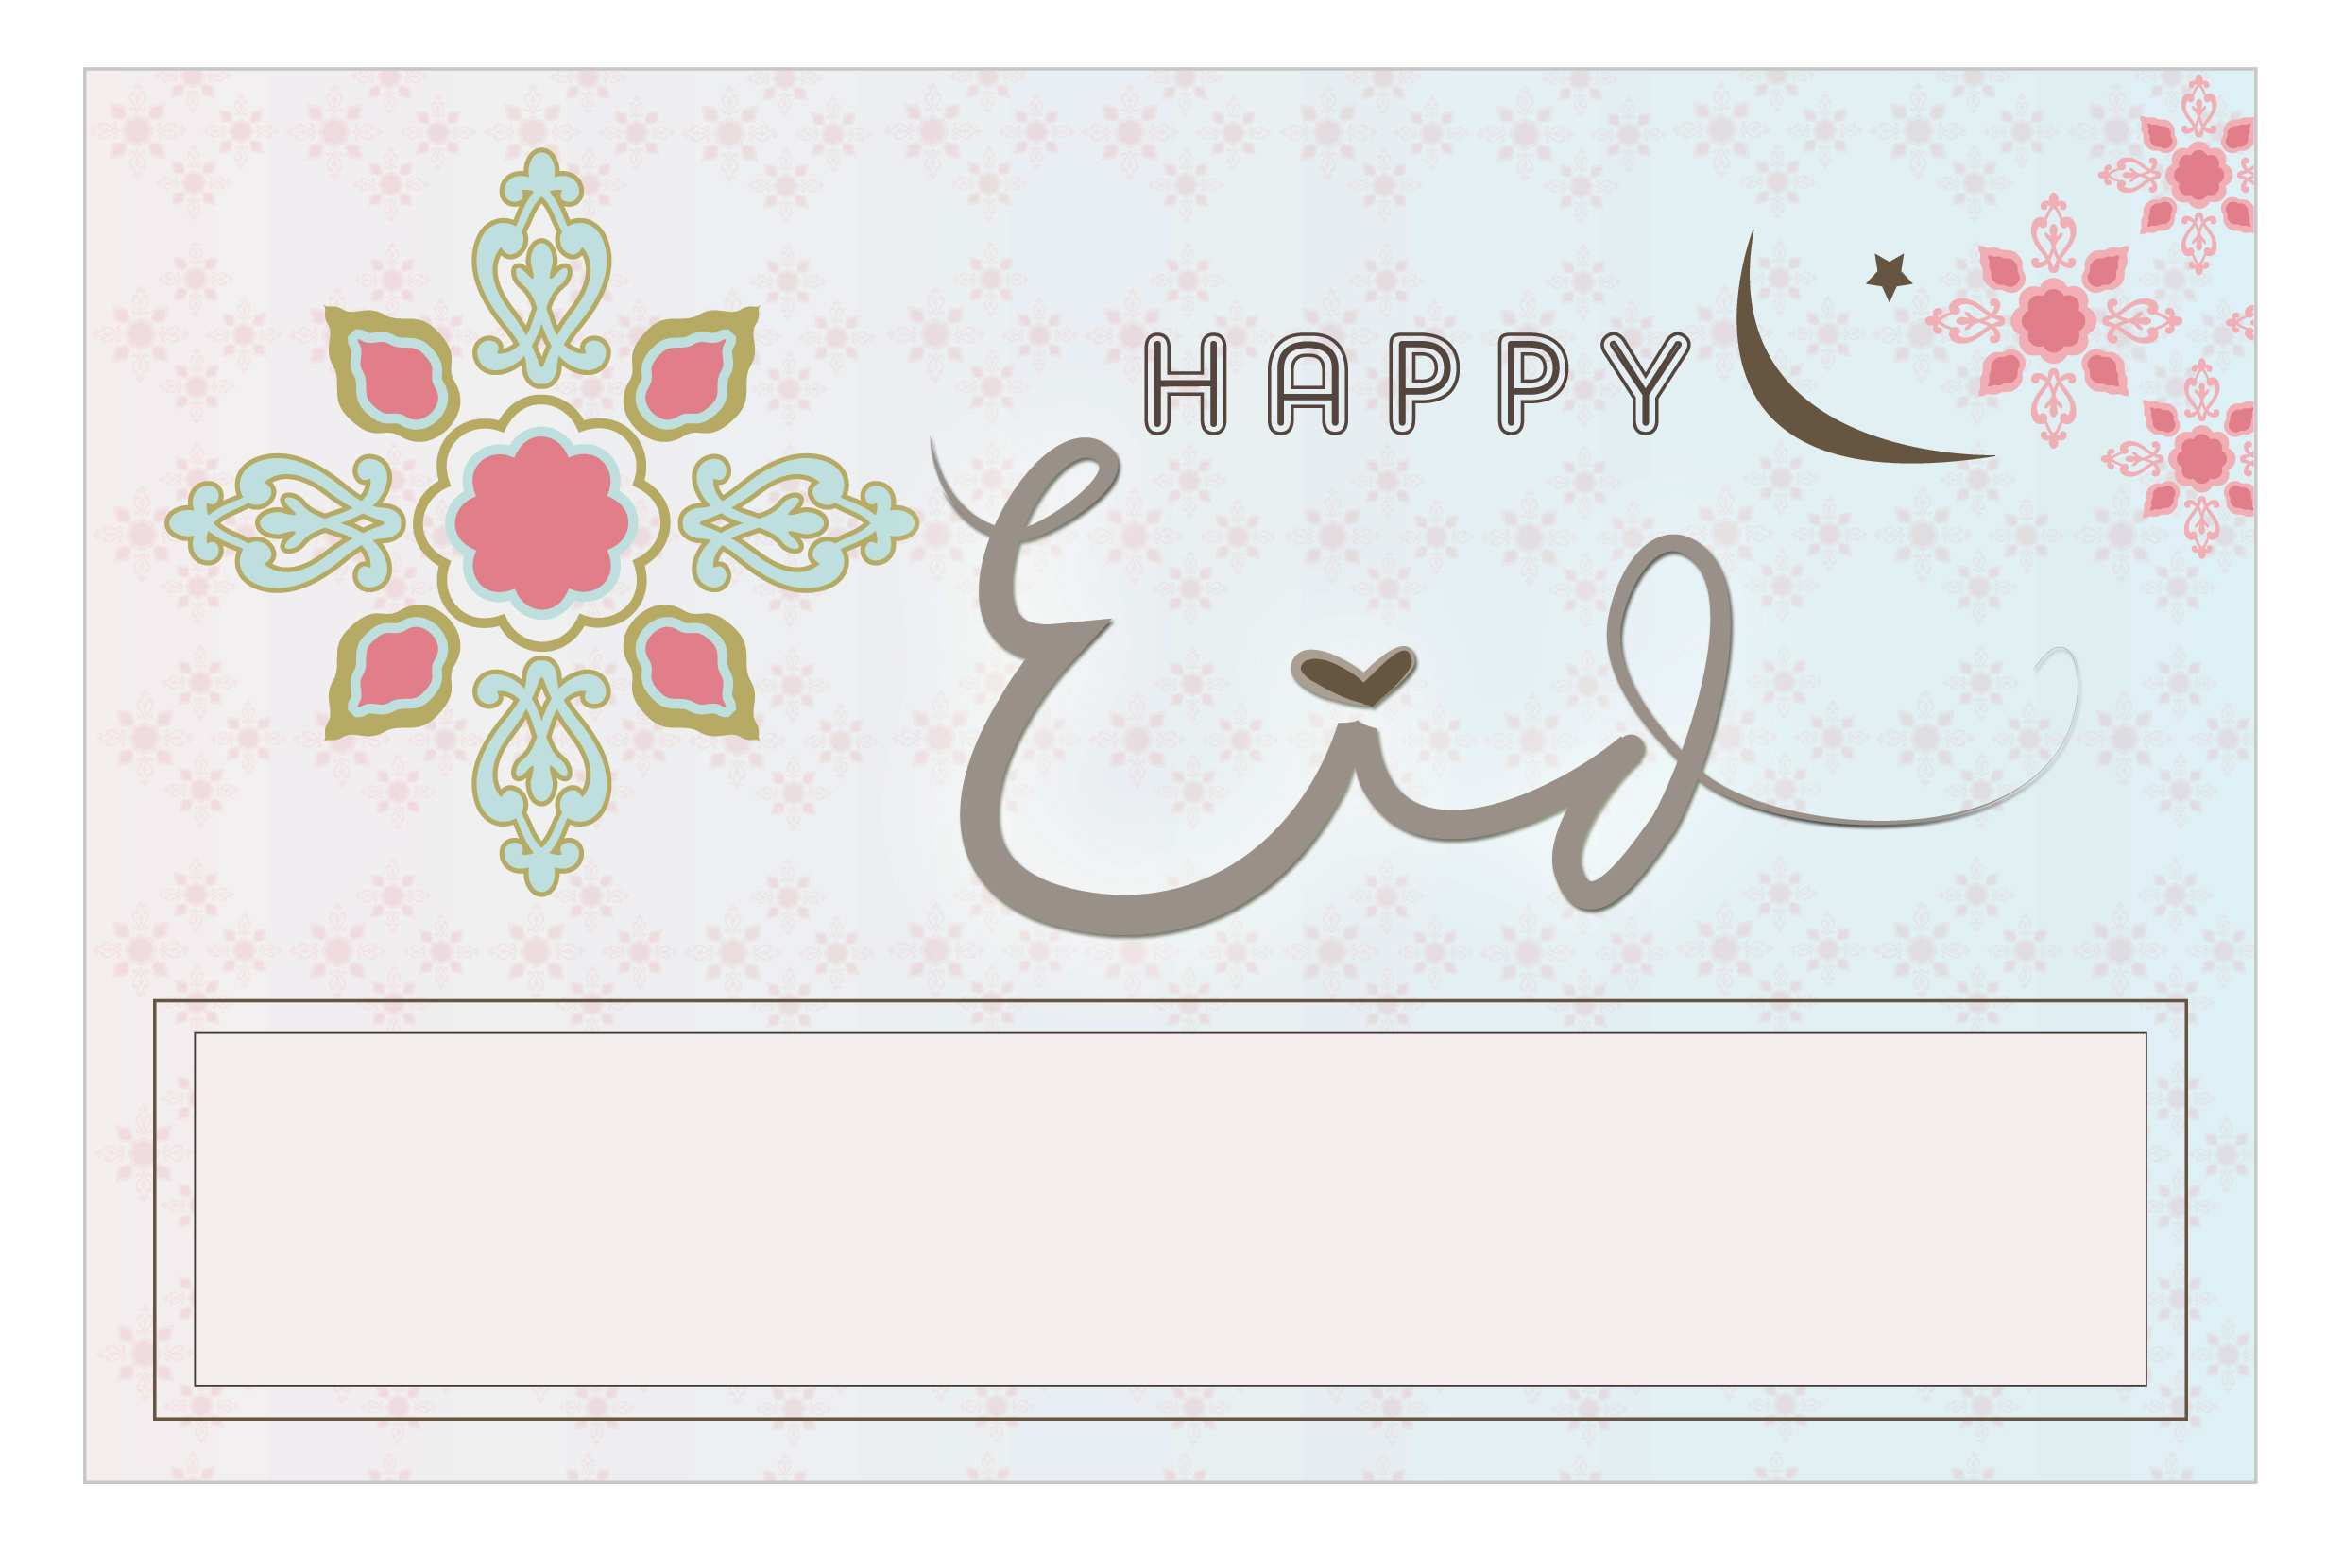 12 Creative Eid Cards Templates For Free Templates With Eid Cards Templates For Free Cards Design Templates